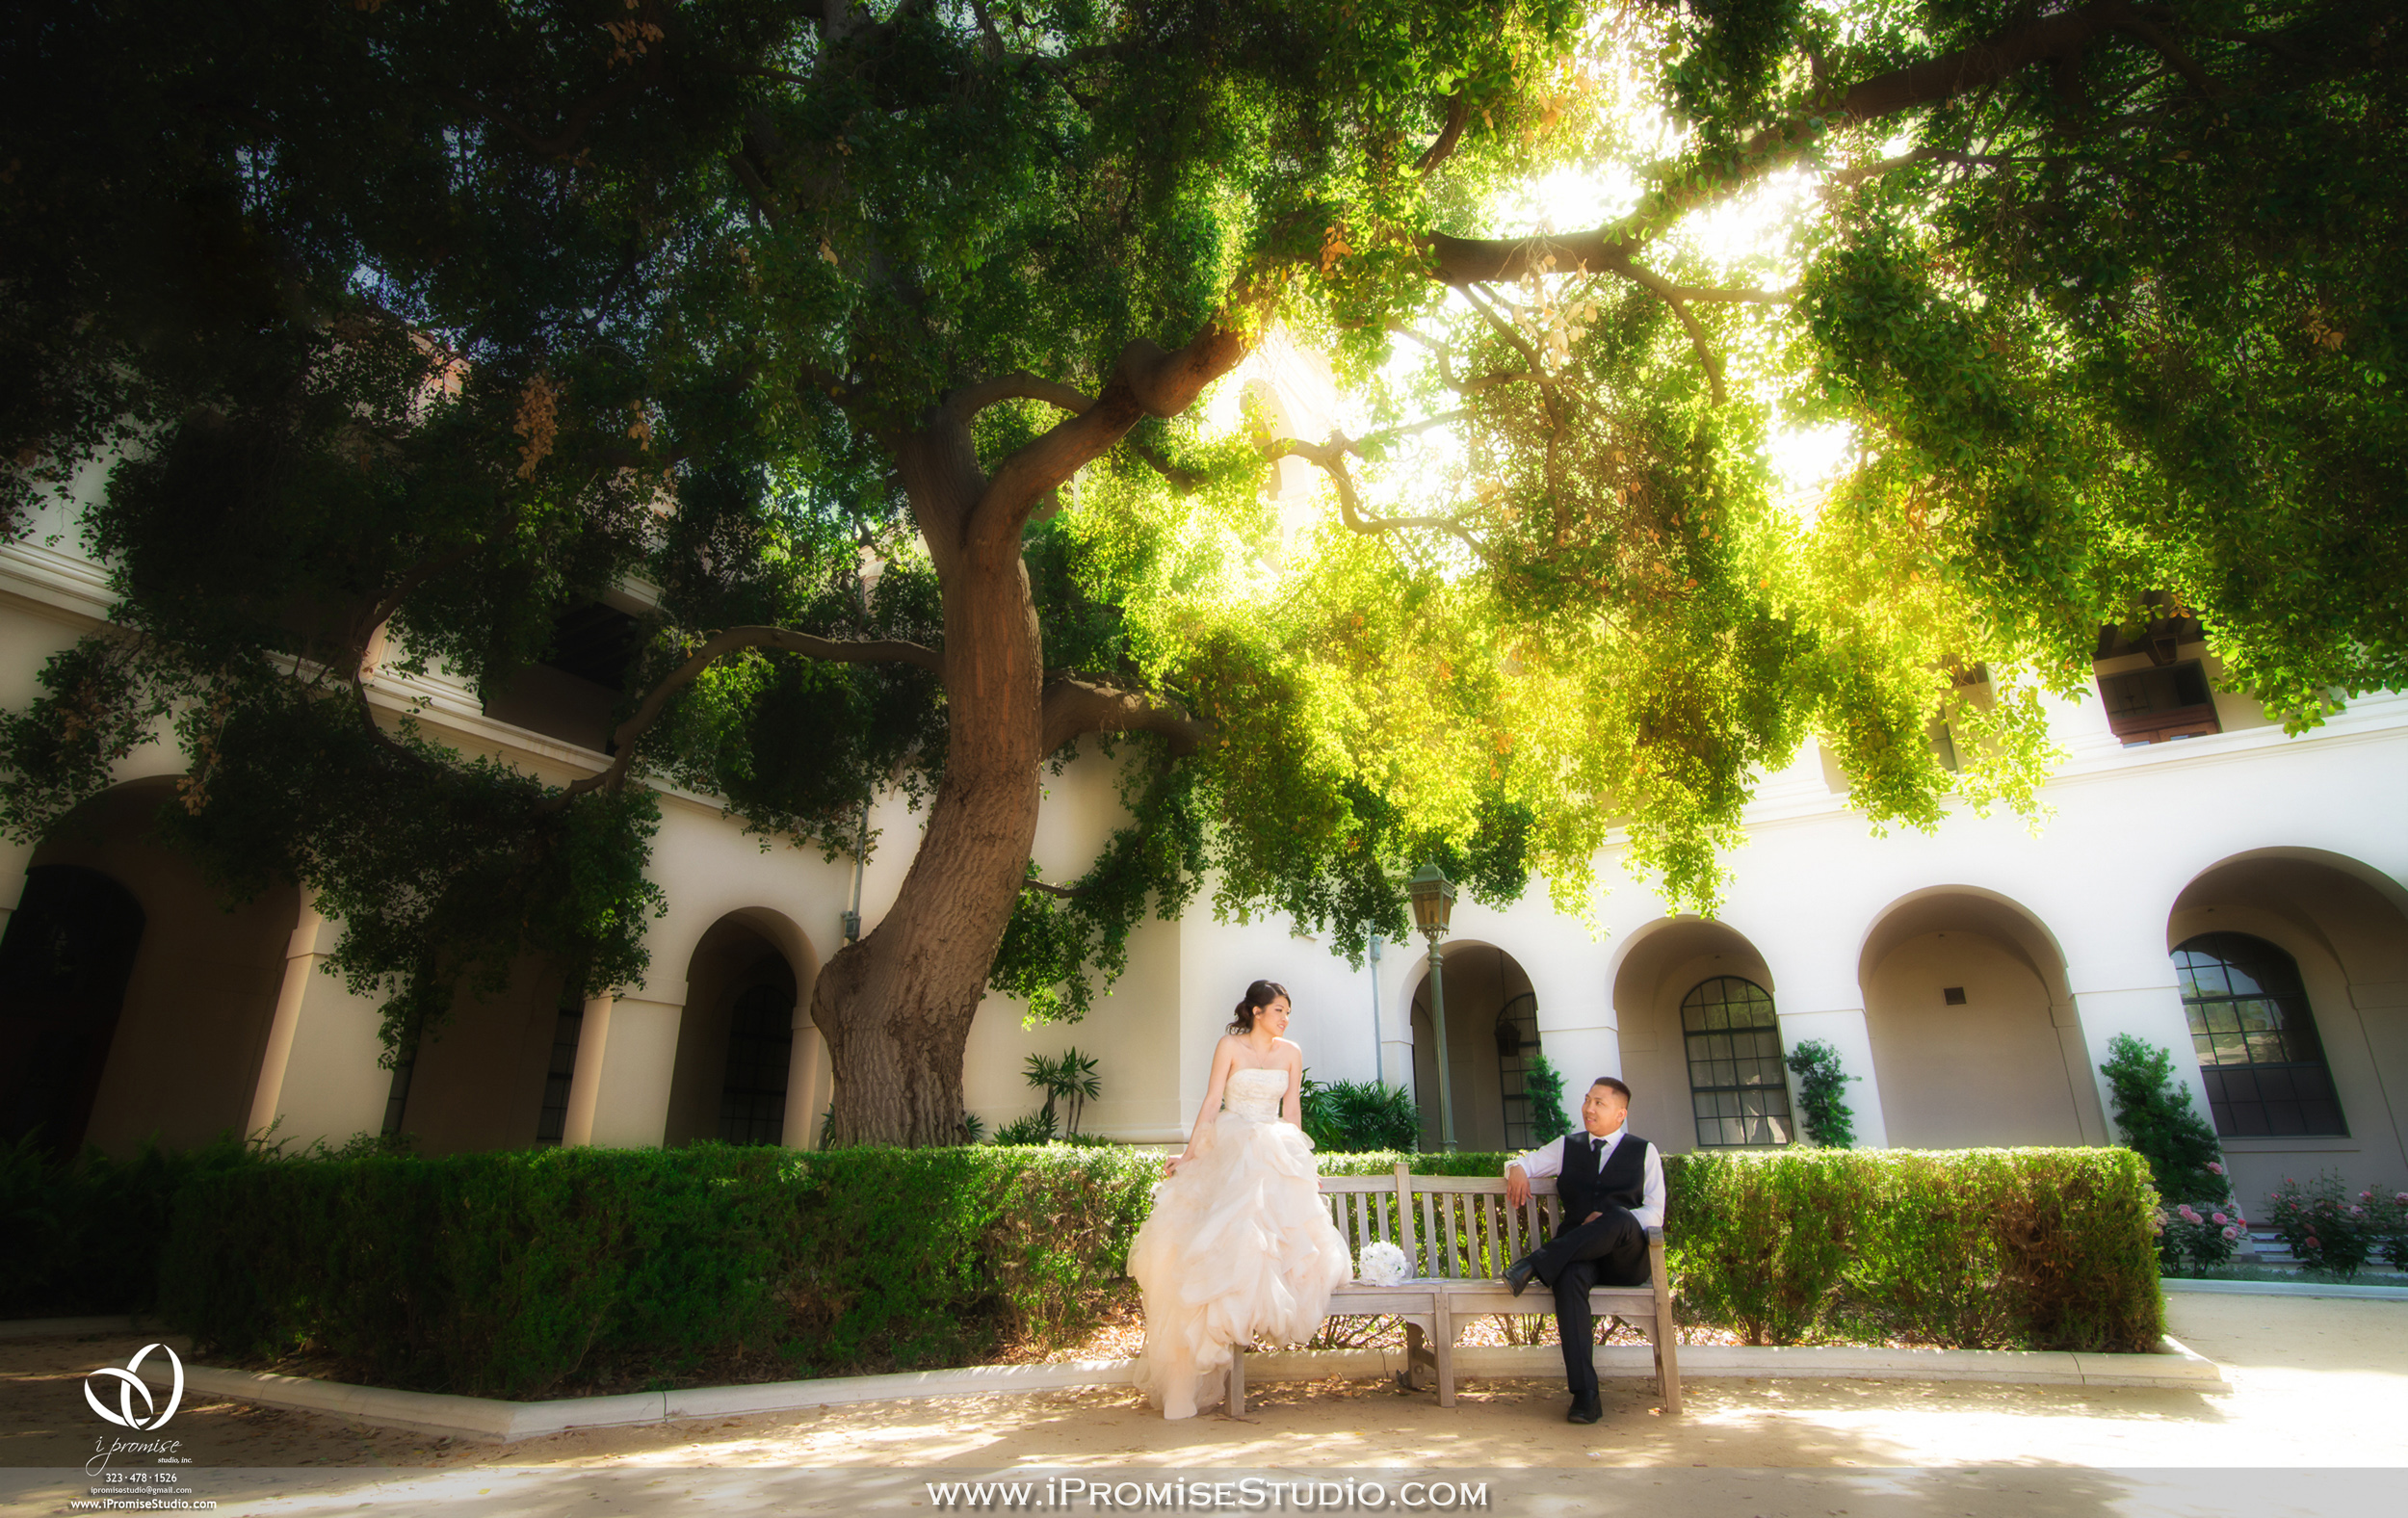 Pasadena Cityhall engagement wedding 07.JPG